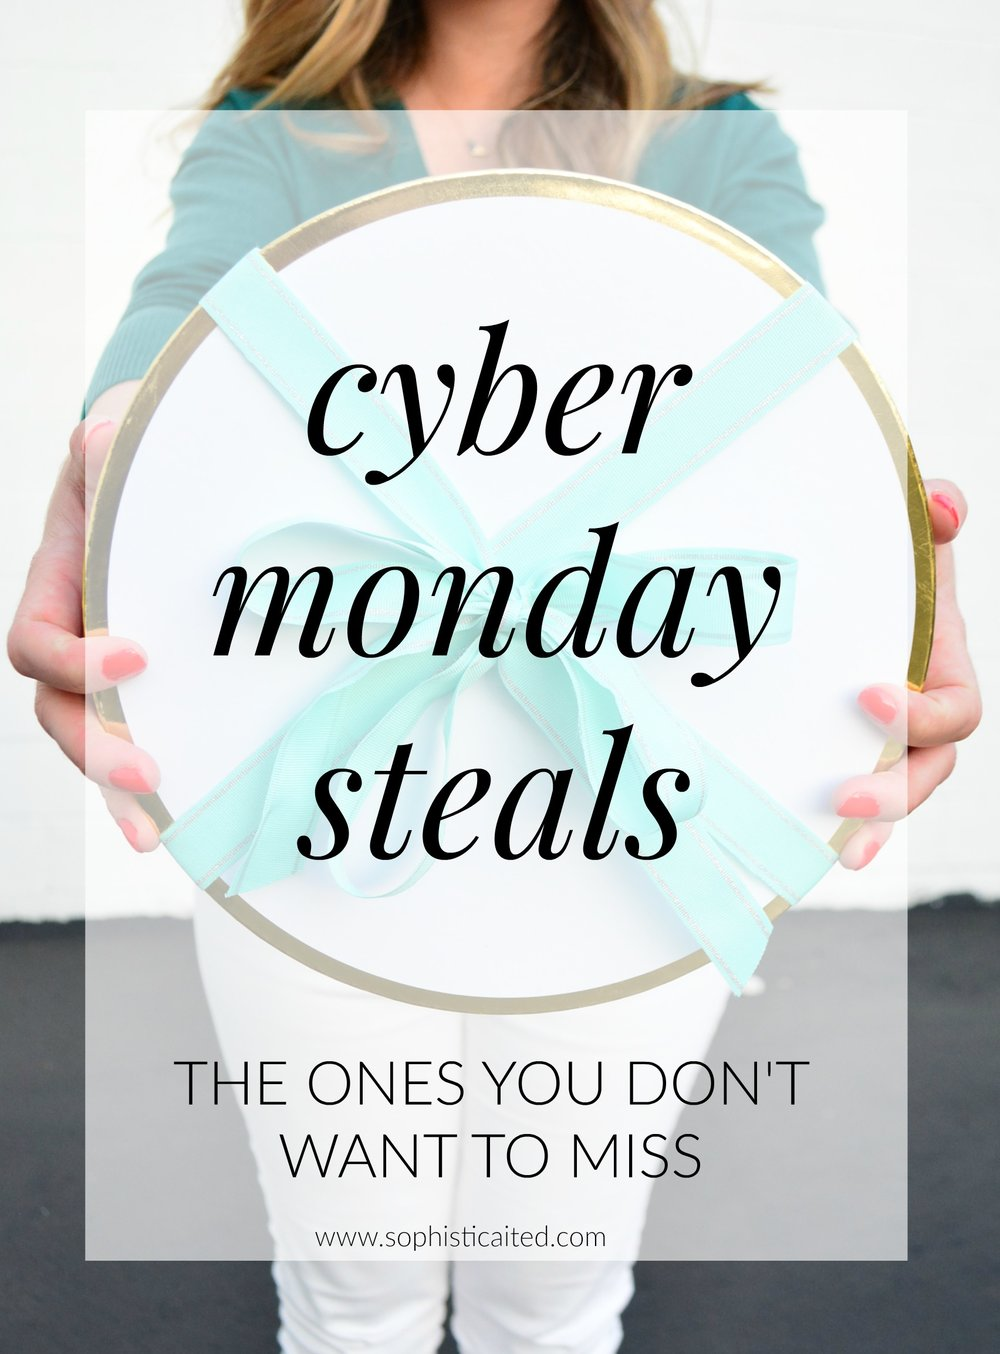 Cyber Monday deals you don't want to miss